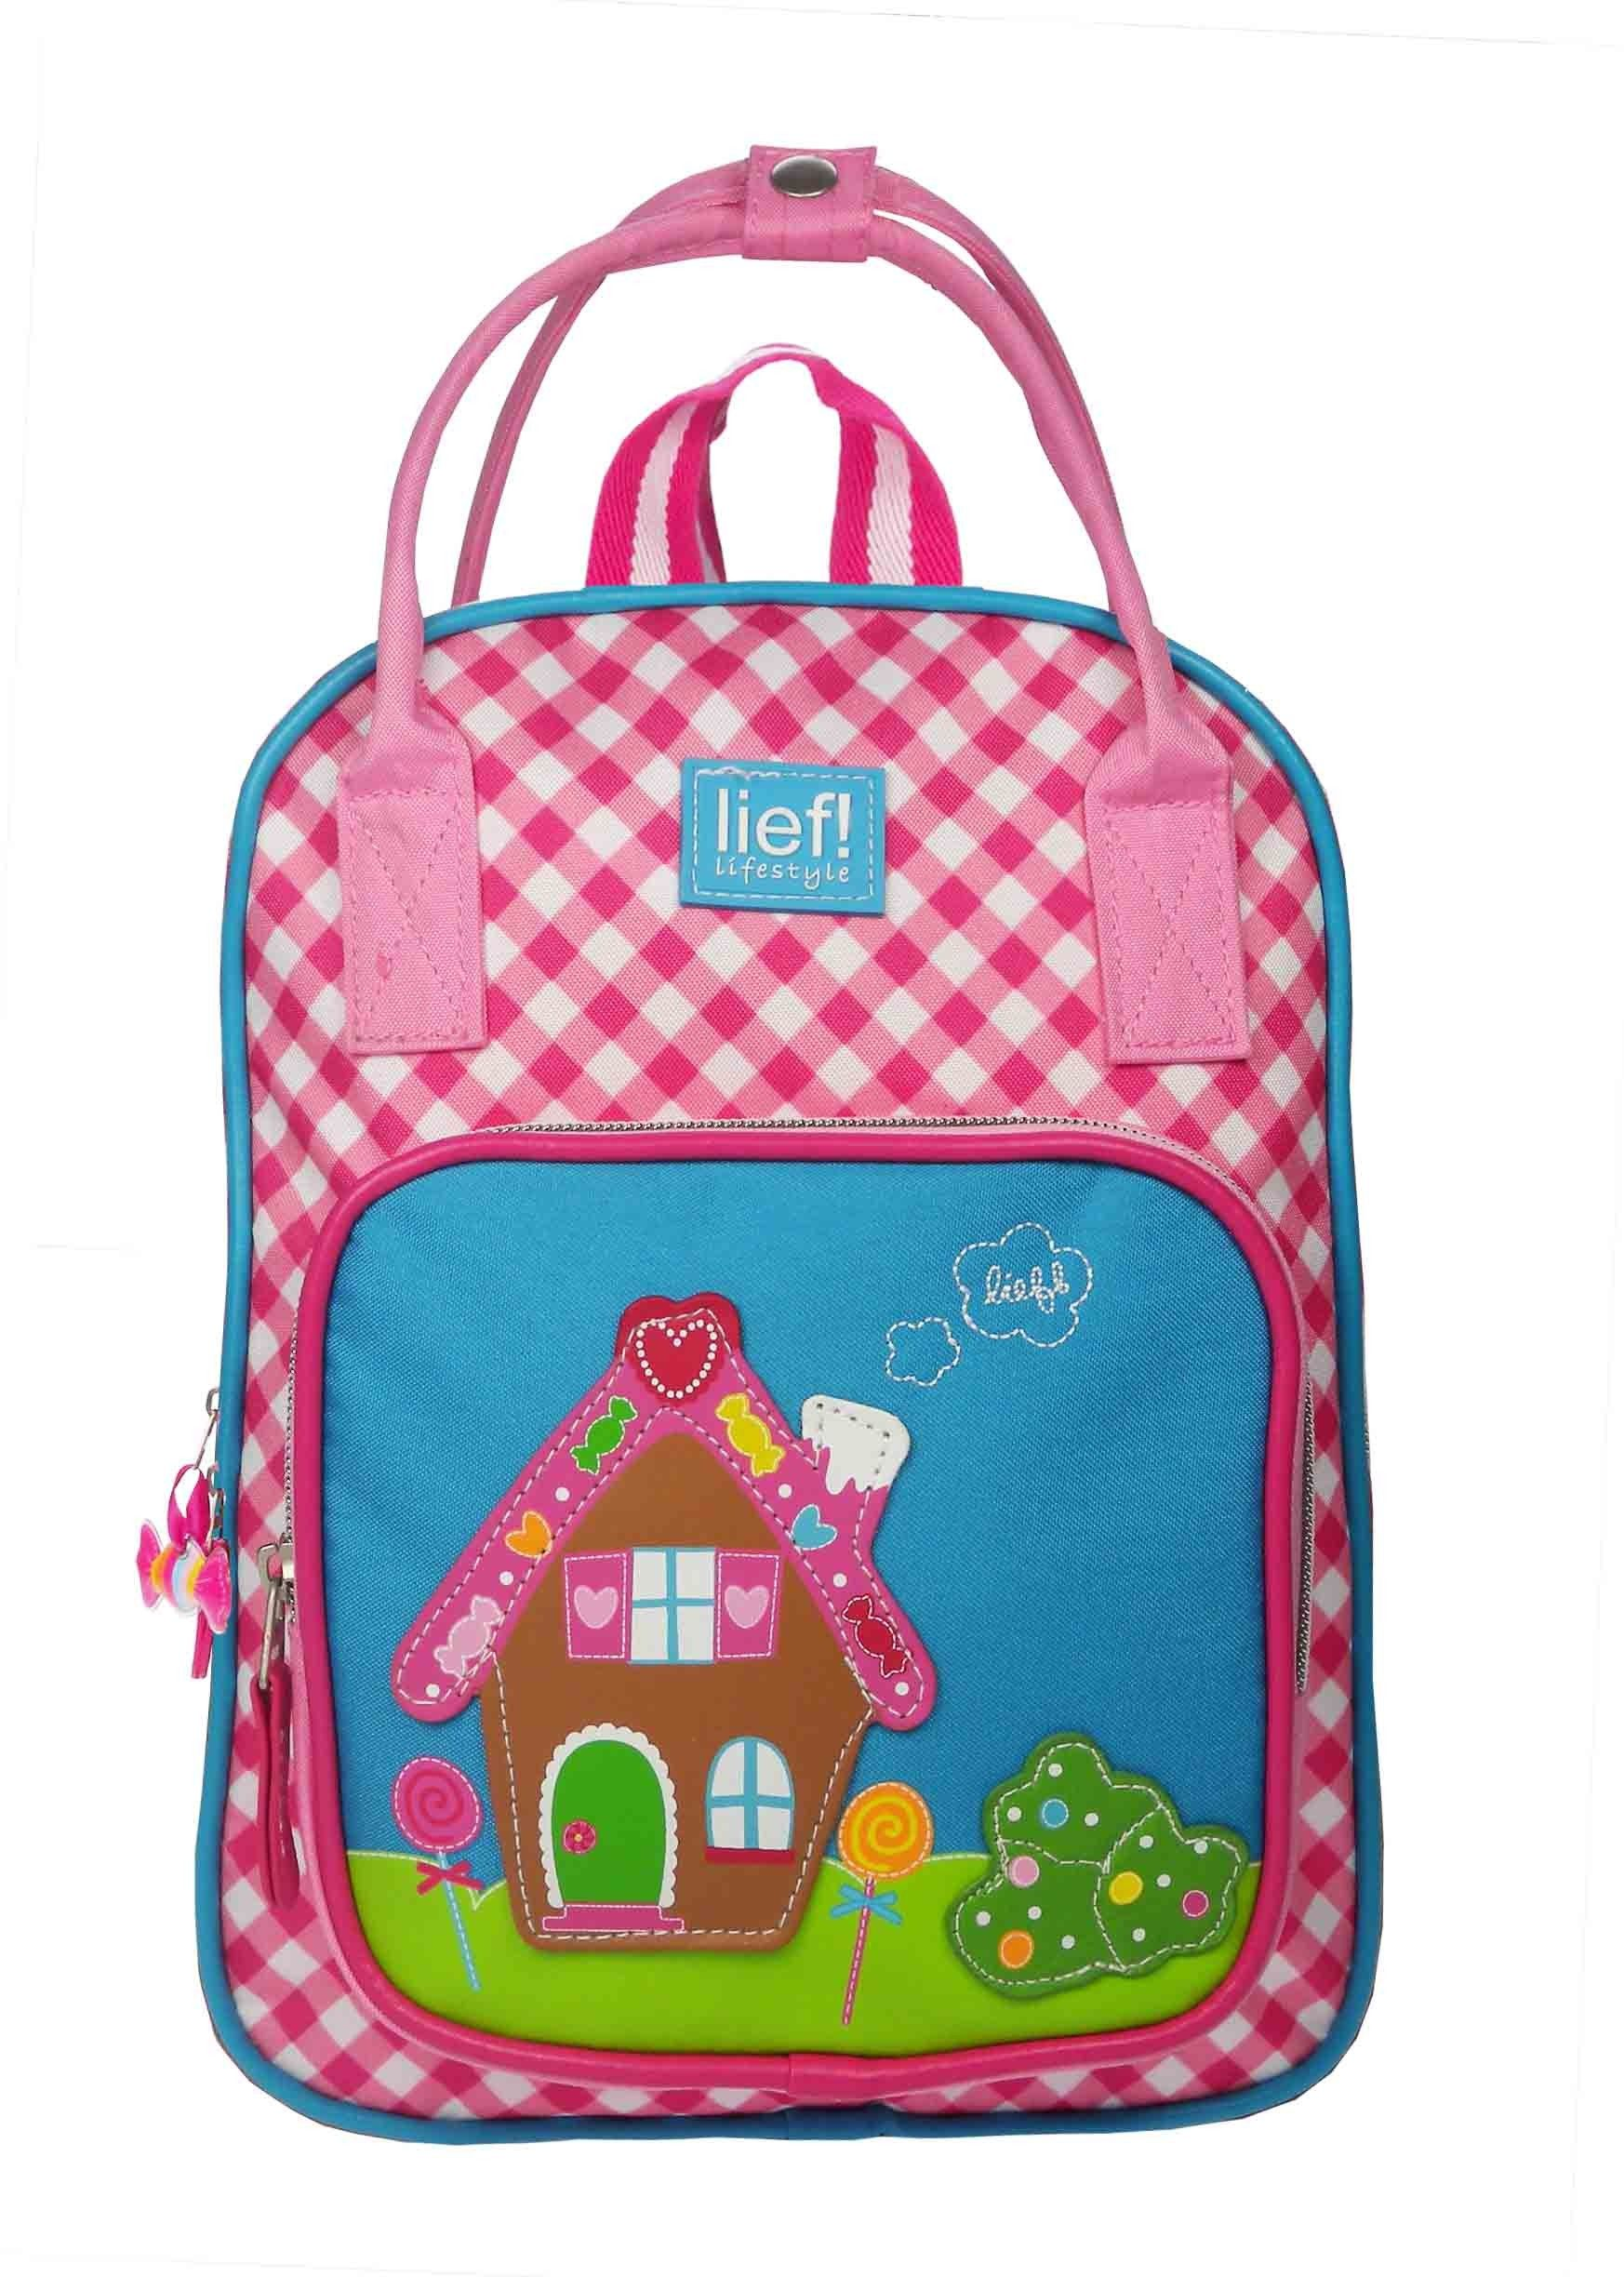 f57c89d426b Roze geruit rugzakje voor meisjes, van lief! lifestyle   Pink checked  backpack for girls, by lief! lifestyle